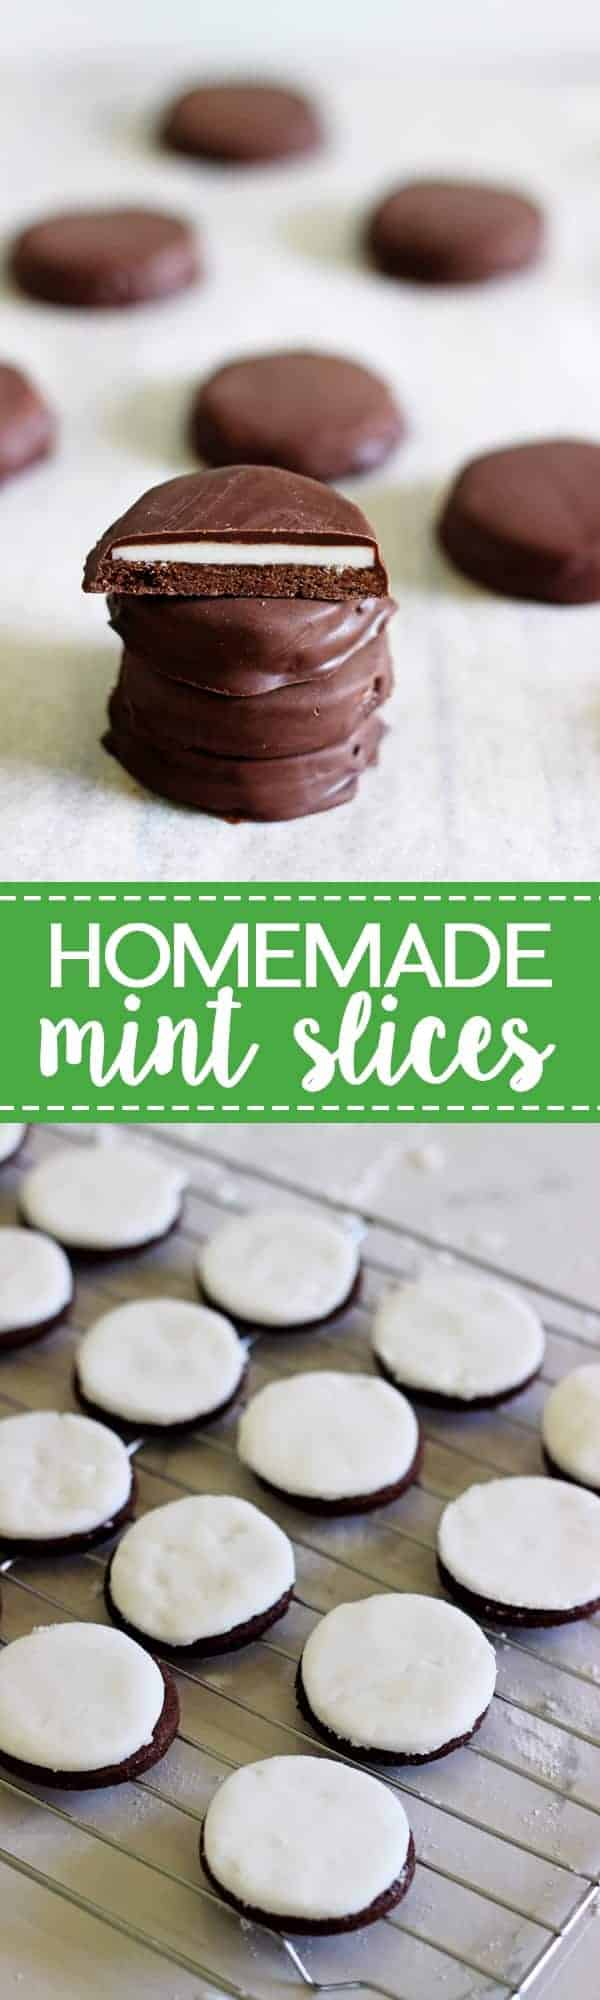 Homemade Mint Slices - New Zealand's favourite biscuit made at home! Crispy chocolate biscuits topped with peppermint fondant and coated in chocolate. | thekiwicountrygirl.com